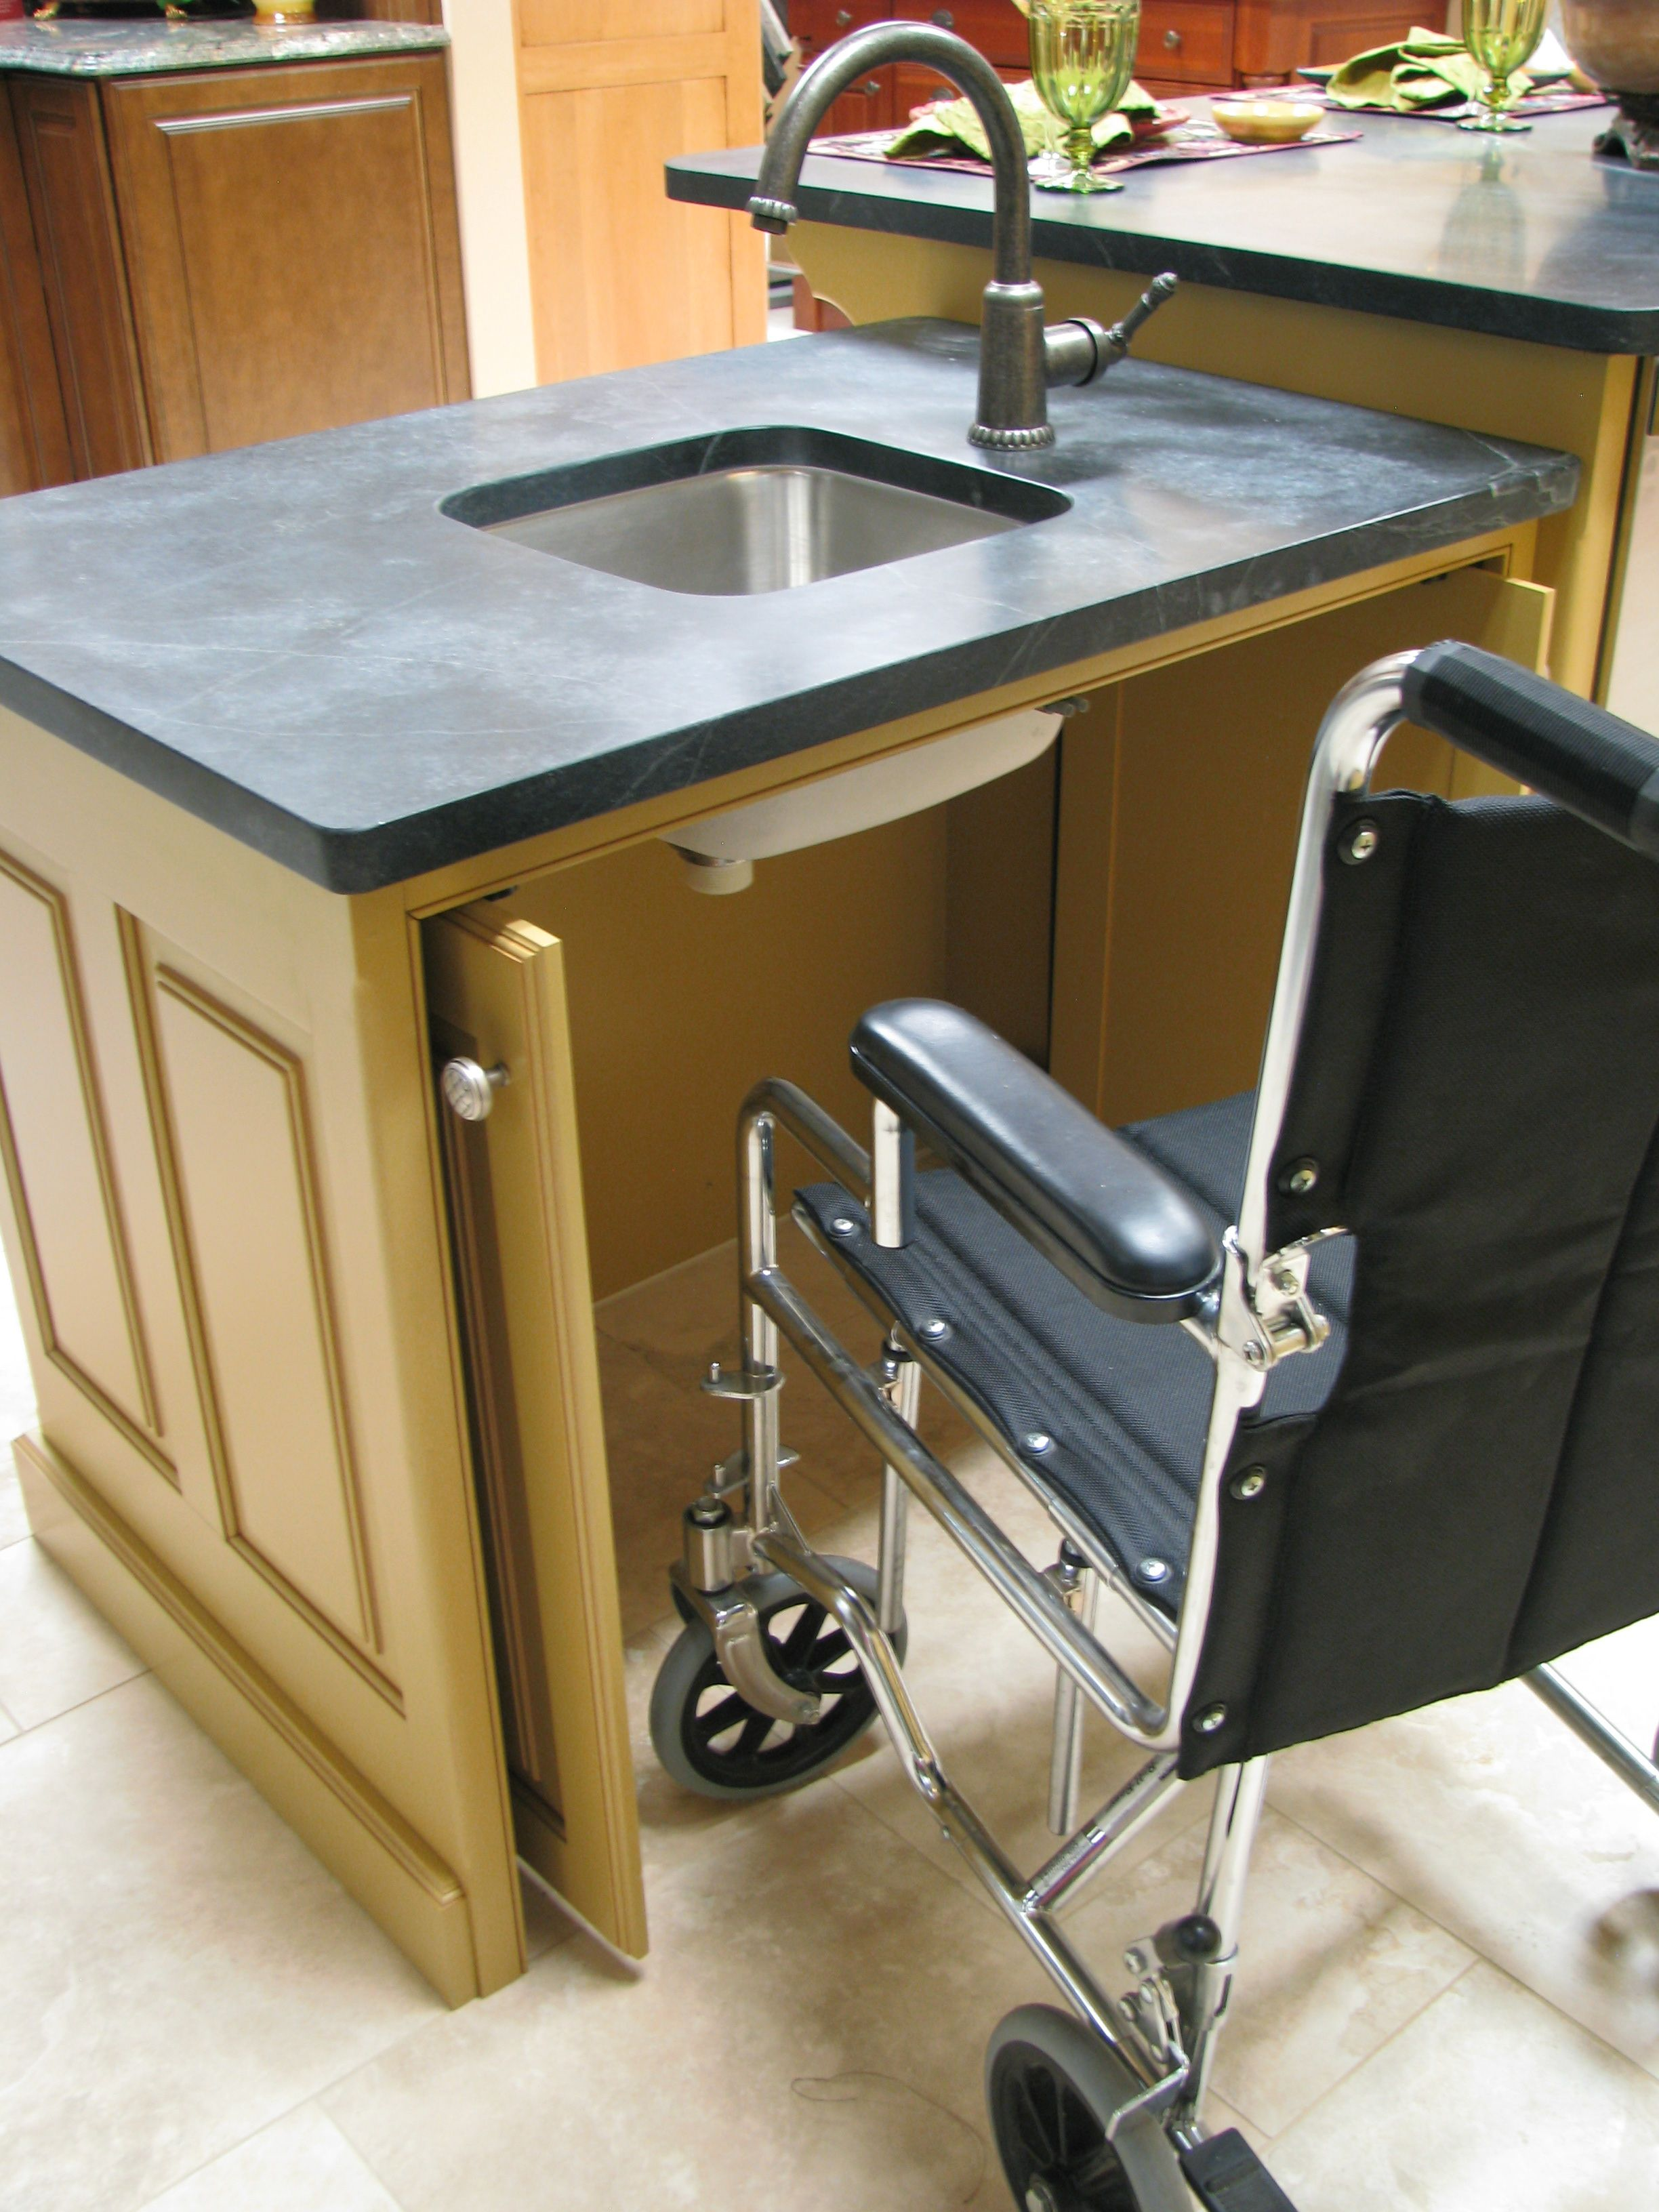 Wheel Chair Access For Sink Cabinet  Design Projects  Pinterest Unique Sink Cabinet Kitchen Design Decoration